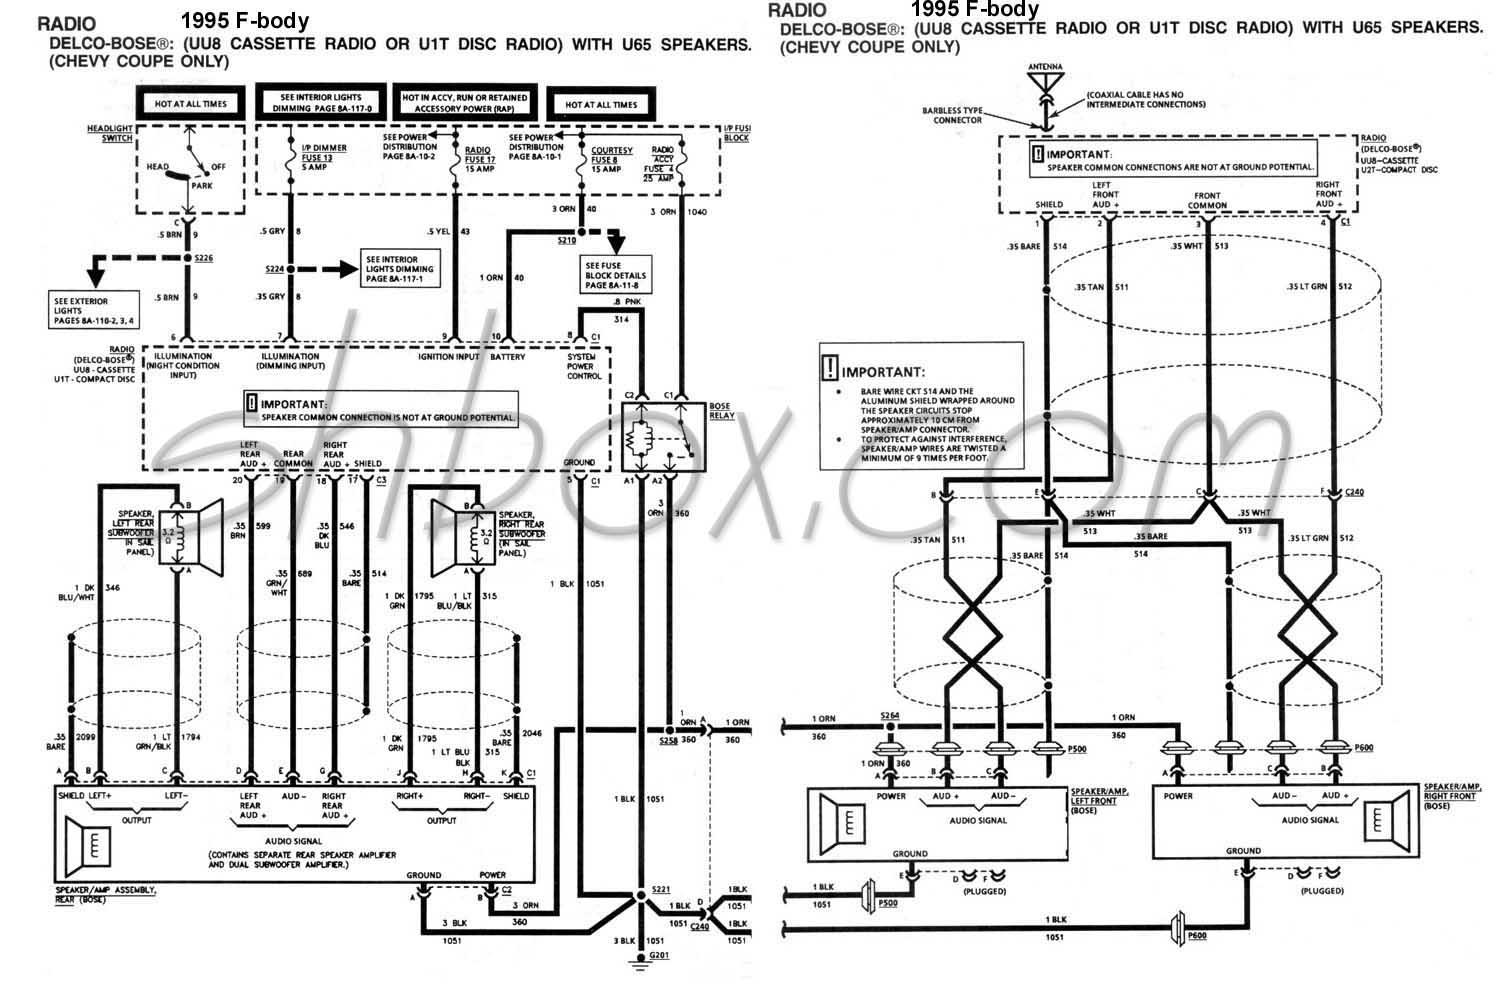 5mk1n Volvo Penta Aq131a Automotive Fuel Pump in addition Sump Pump Float Switch Wiring Diagram together with Duplex Lift Station Wiring Schematic additionally US6632072 besides Irrigation Relay Wiring Diagram. on septic pump relay wiring diagram